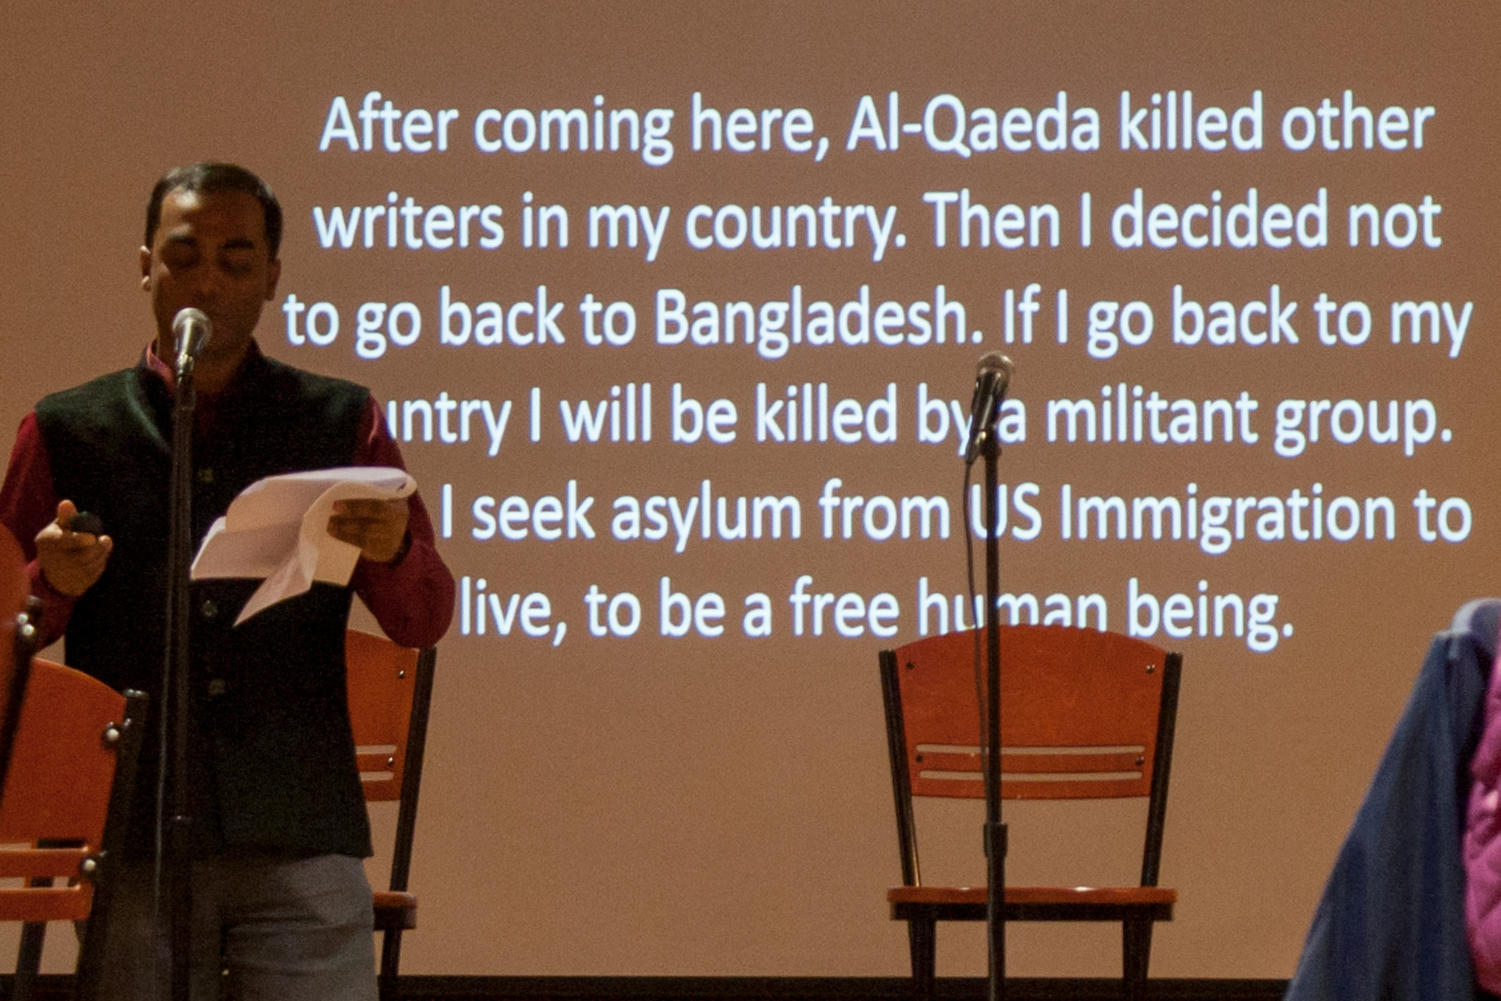 """Writer and activist Tuhin Das speaks about the dangers Al-Qaeda presented to writers in his homeland of Bangladesh at Wednesday night's """"City Of Asylum Exiled Writers Residencies"""" event. (Photo by Sarah Connor 